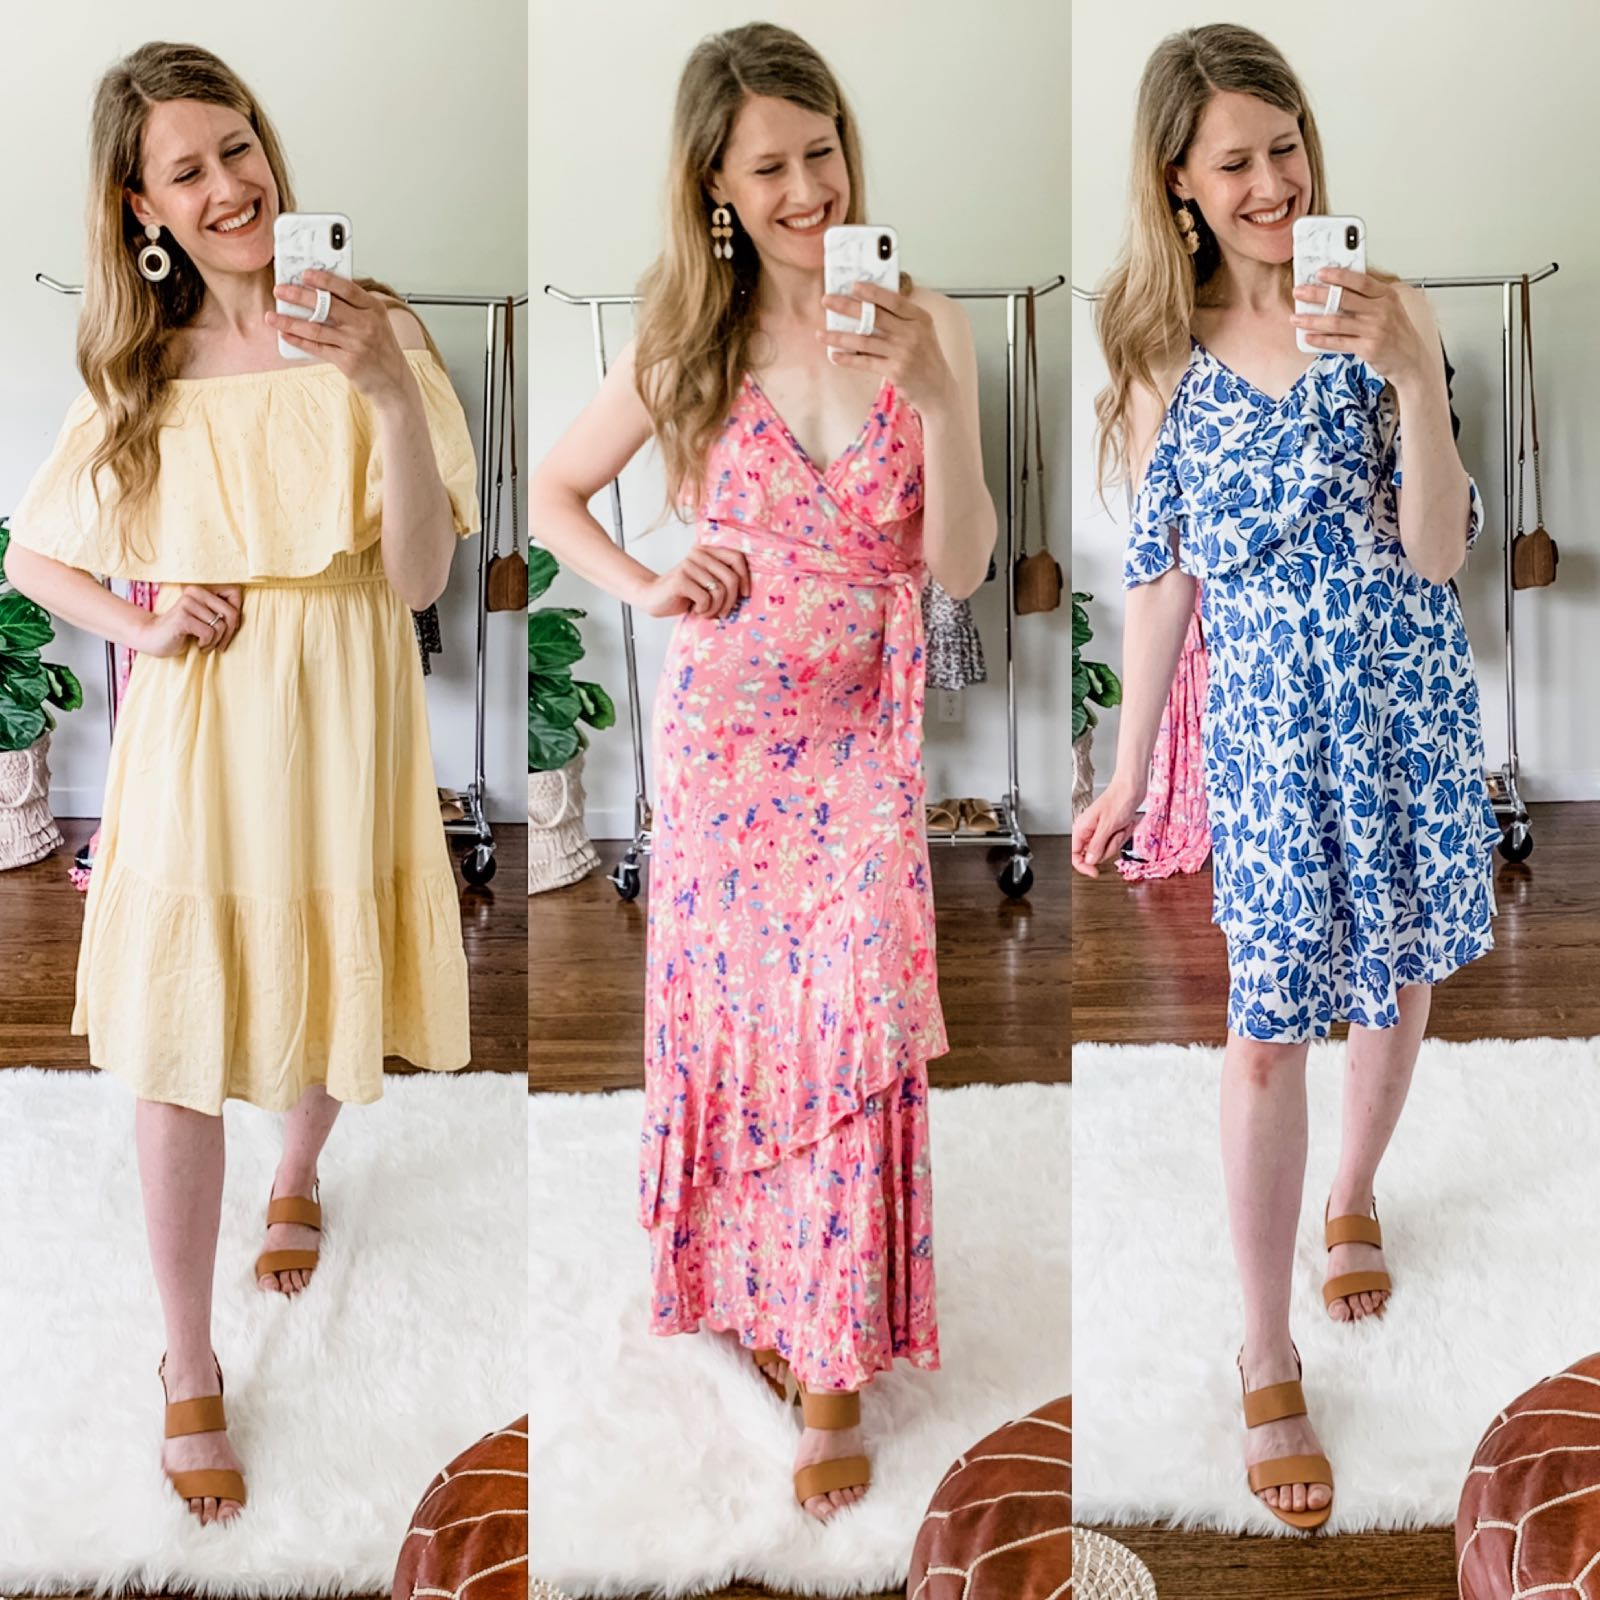 05e0b085ac9 Summer dresses from the Sofia Vergara collection at Walmart - under  40!